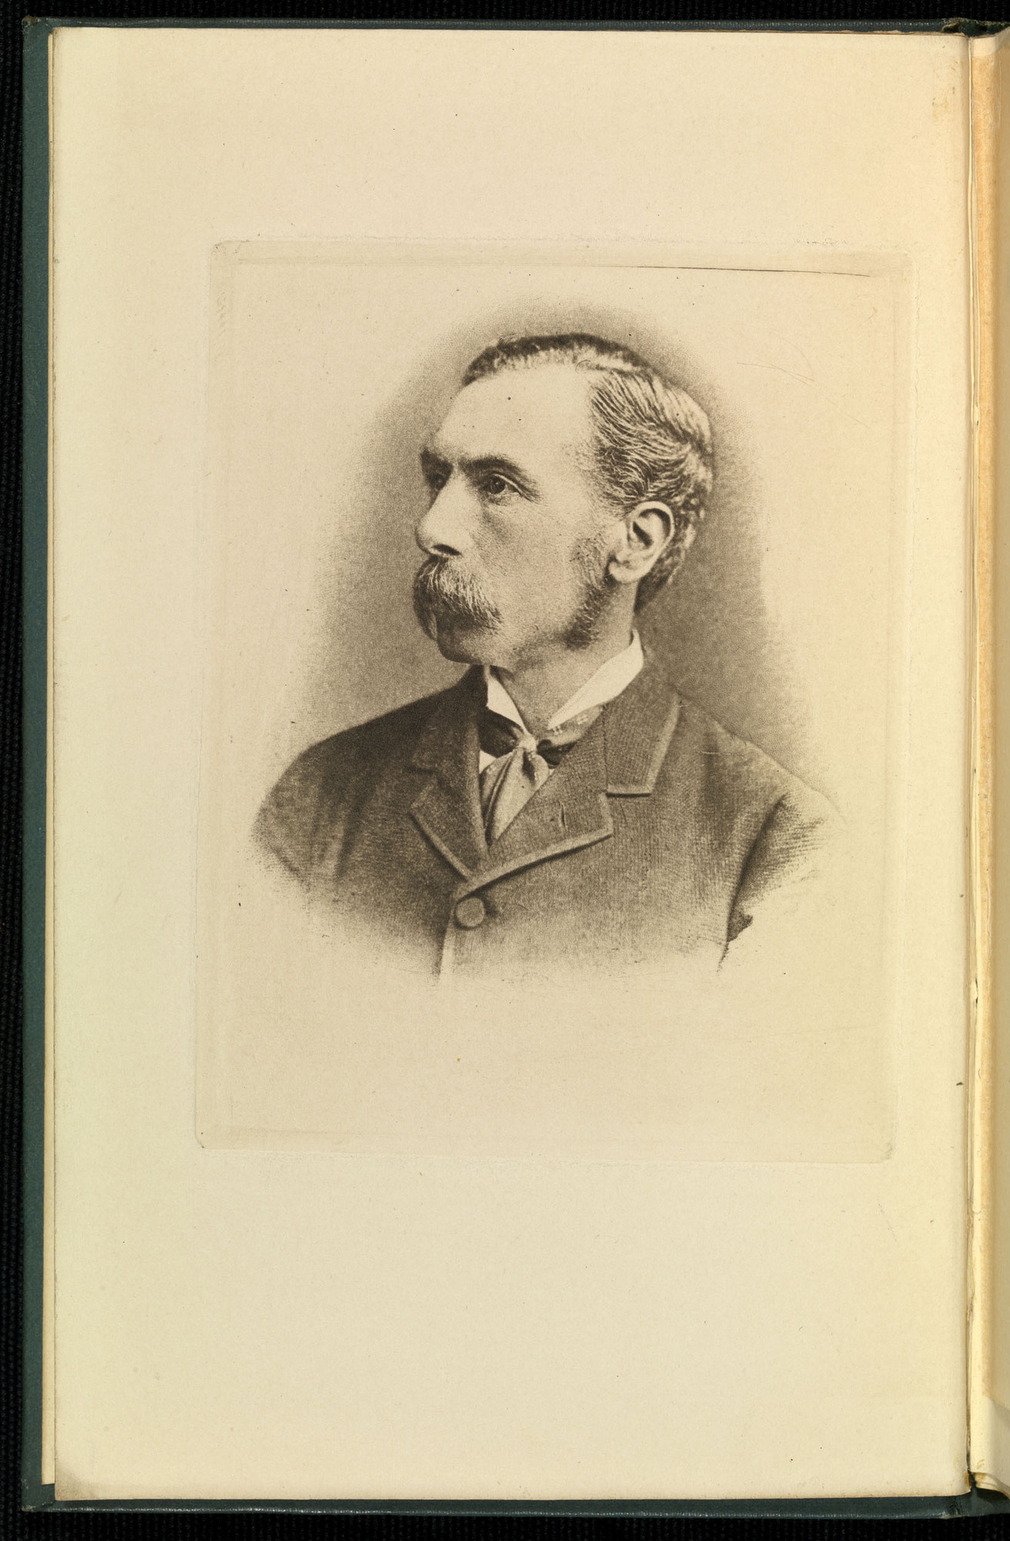 Alfred Austin (1835–1913) was a writer and poet. He wrote for many years for the Conservative paper The Standard, and held the position of Poet Laureate from 1896 until his death in 1913.